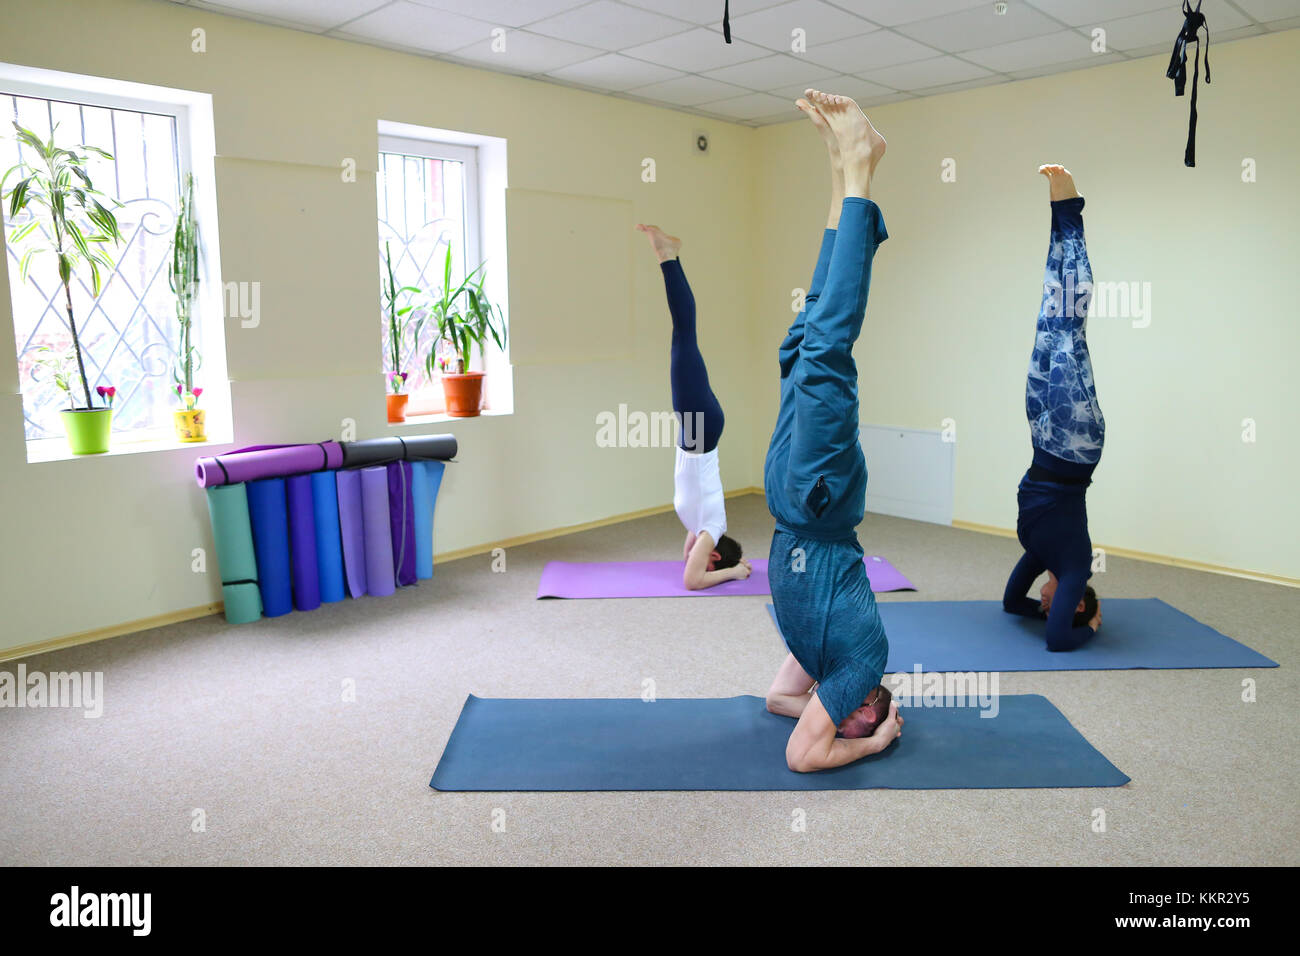 Two Women And Men Of American Appearance Engaged In Yoga People Sit